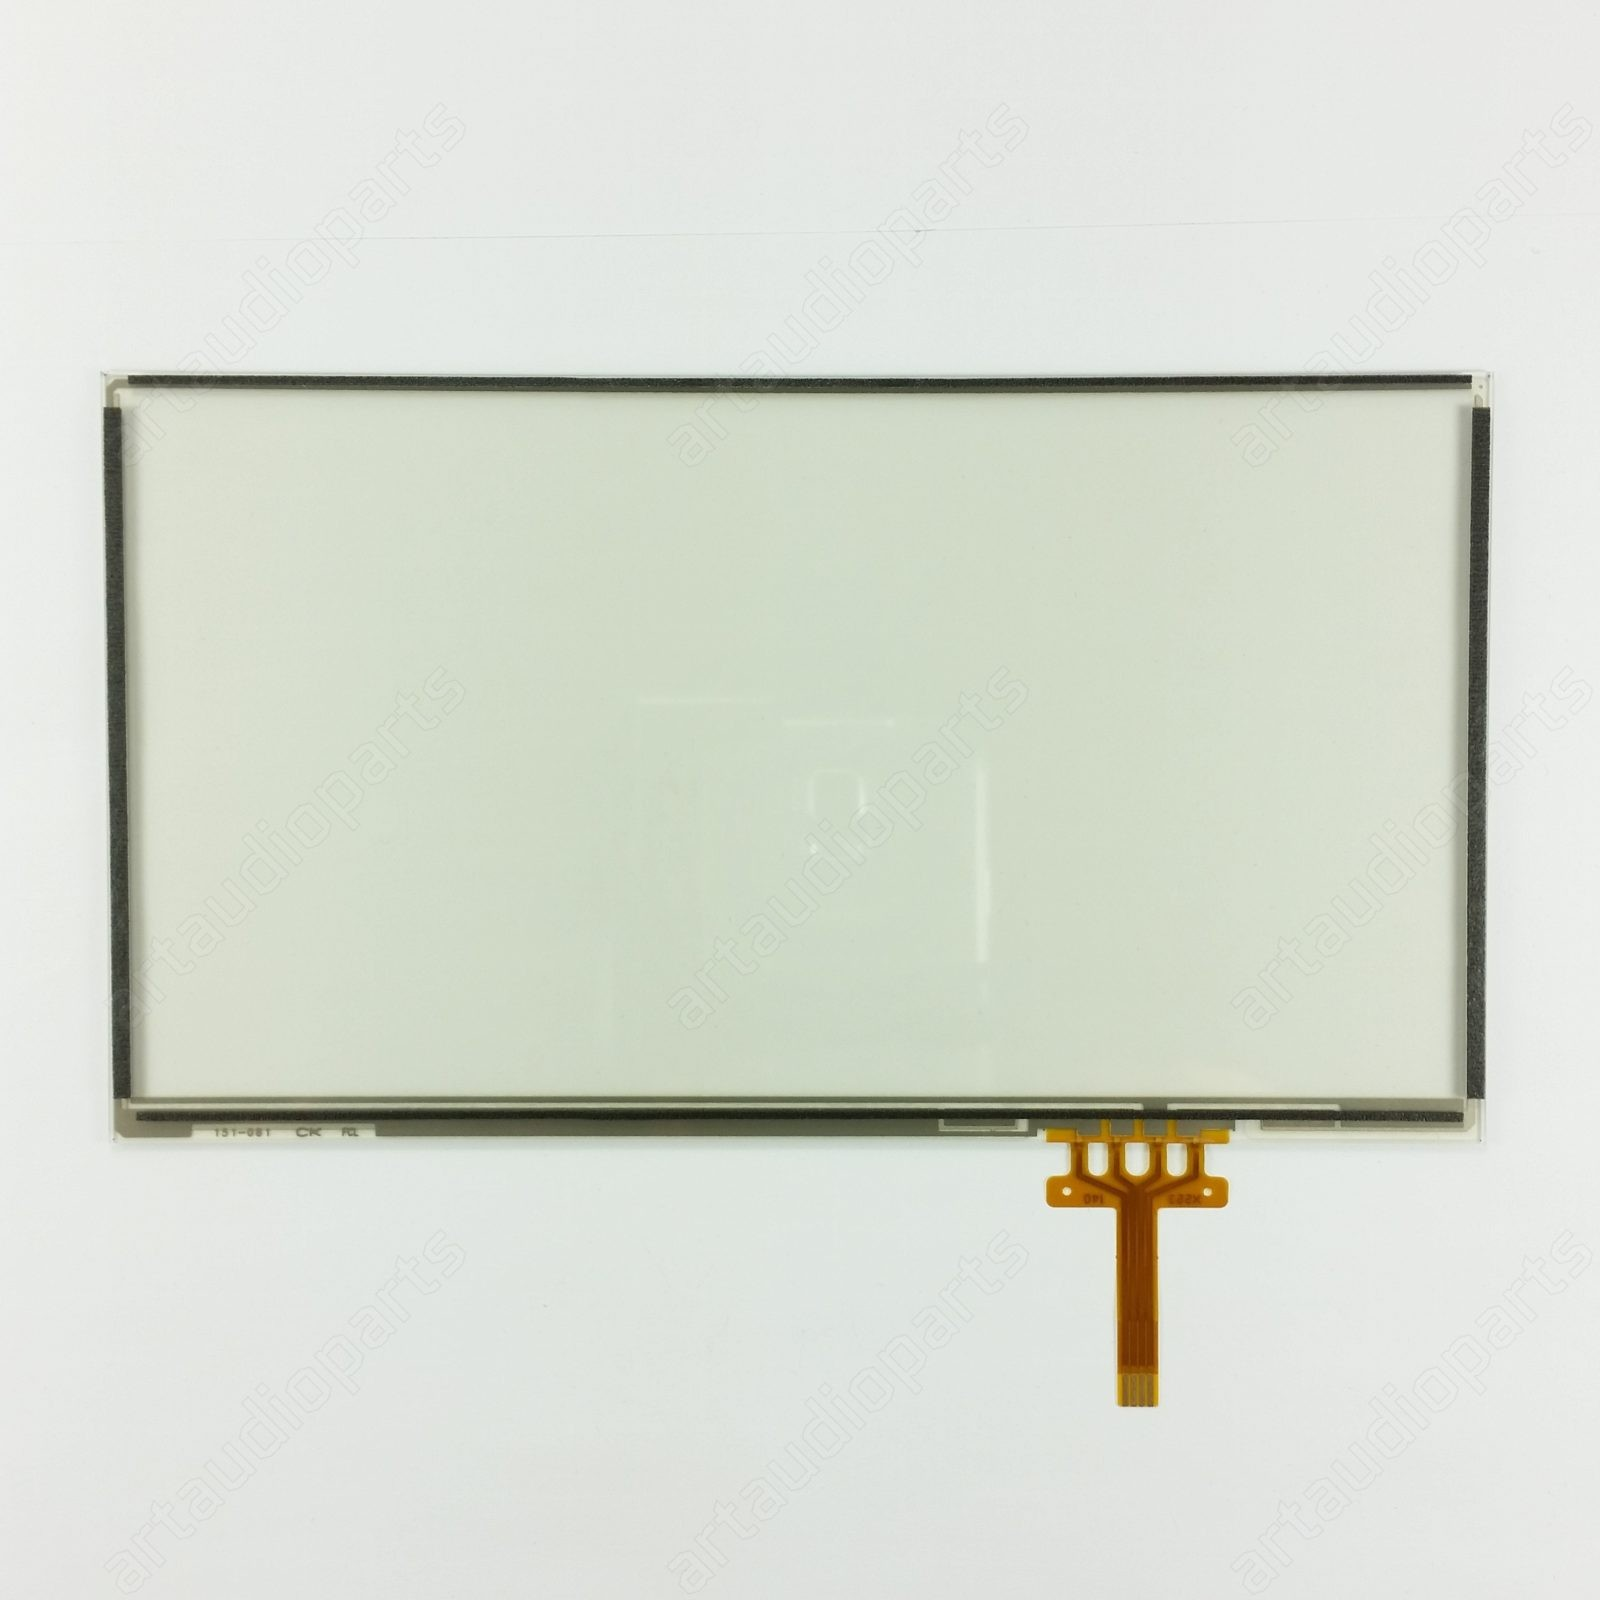 hight resolution of touch panel screen for pioneer avh p8400bh avh p8400bt avh p8450bt avic z150bh